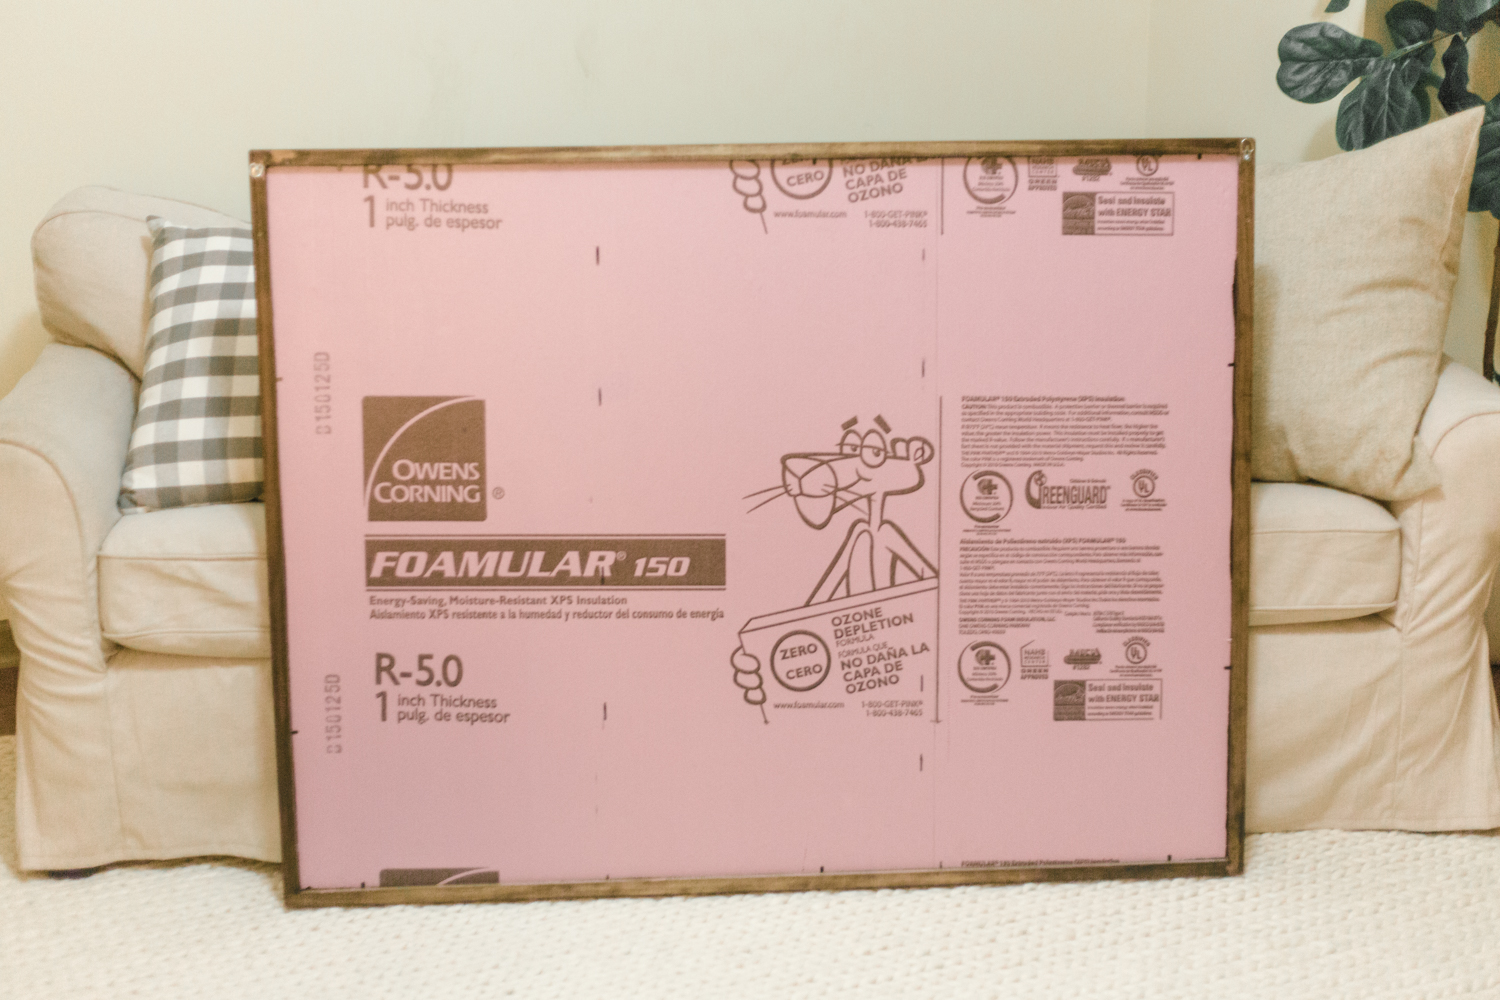 using insulation for a mounting board